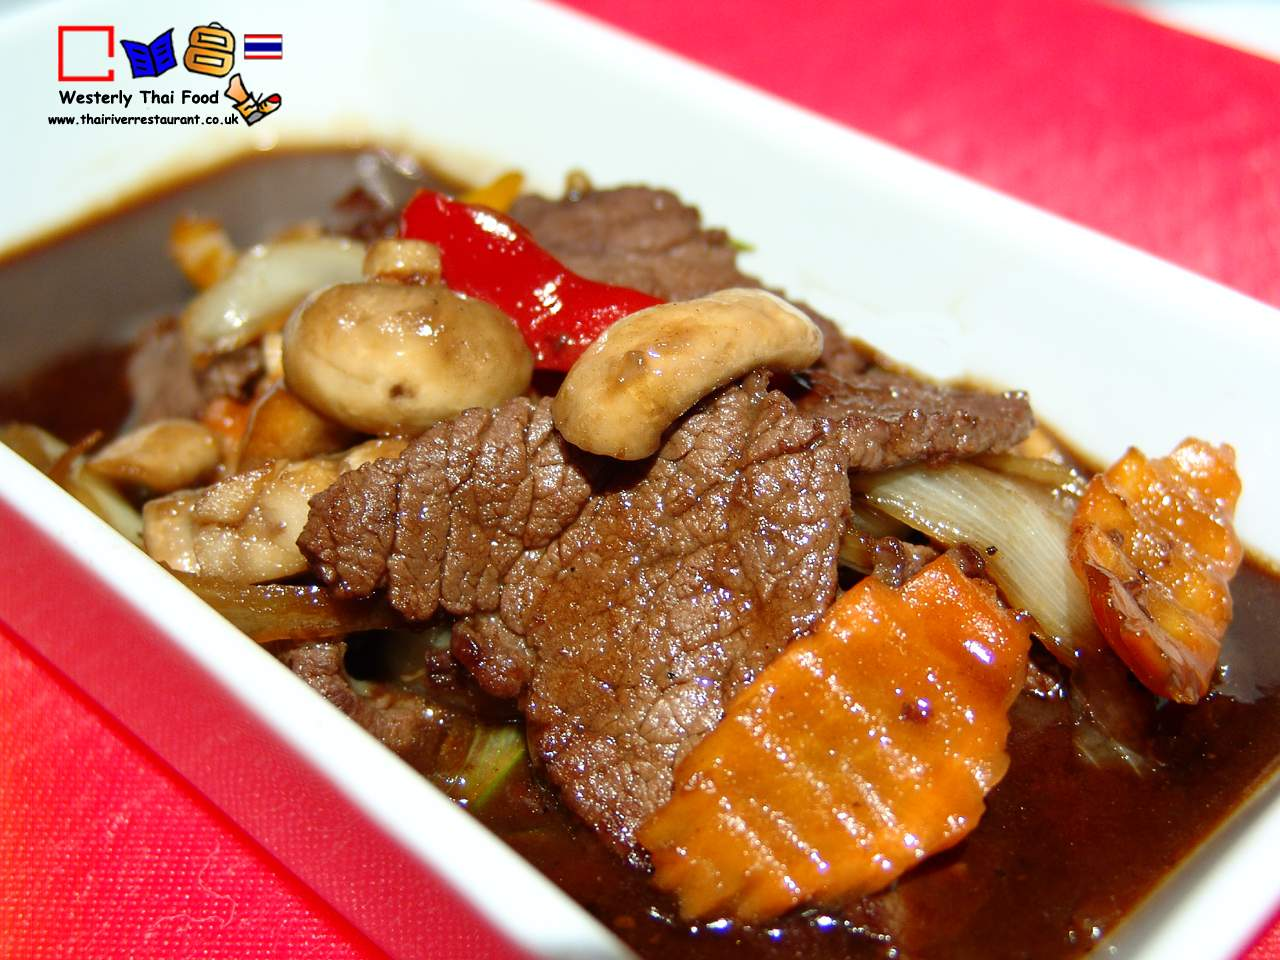 ... pork tenderloin with mushroom sauce and other pork recipes at